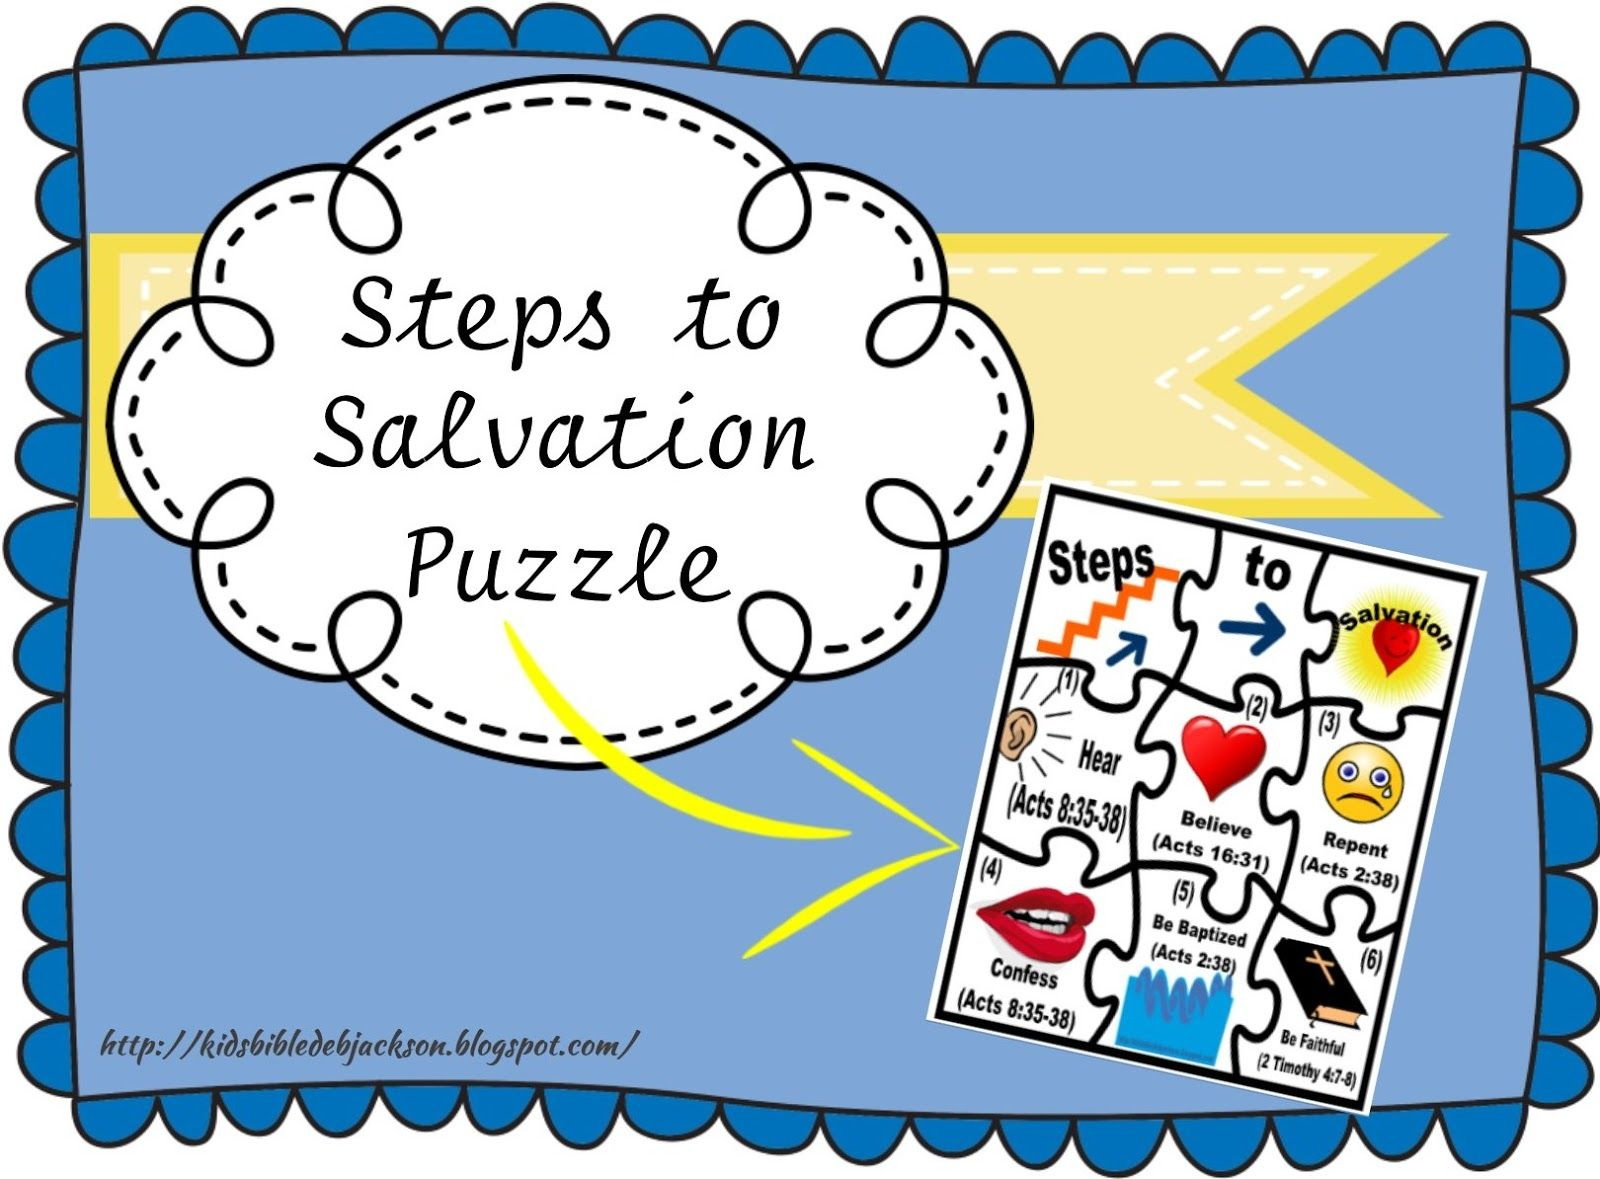 Steps To Salvation Puzzle